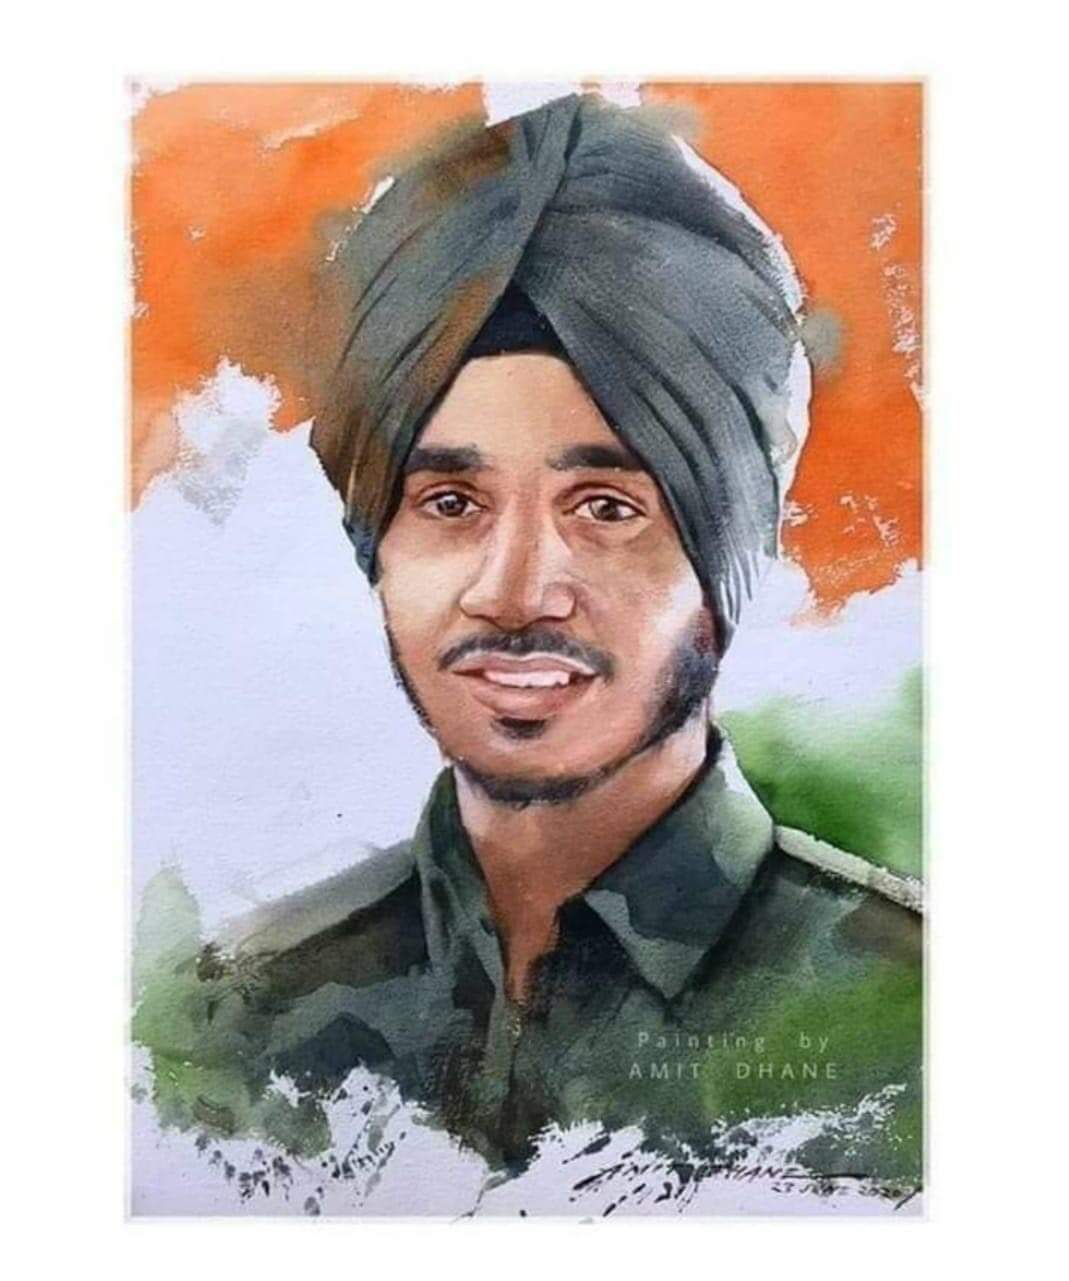 Must Read Story of chhotey veer (little brother) Gurtej, just 23 years of age, whose boyish looks concealed a steely soldier, who never shyed away from an unequal fight.